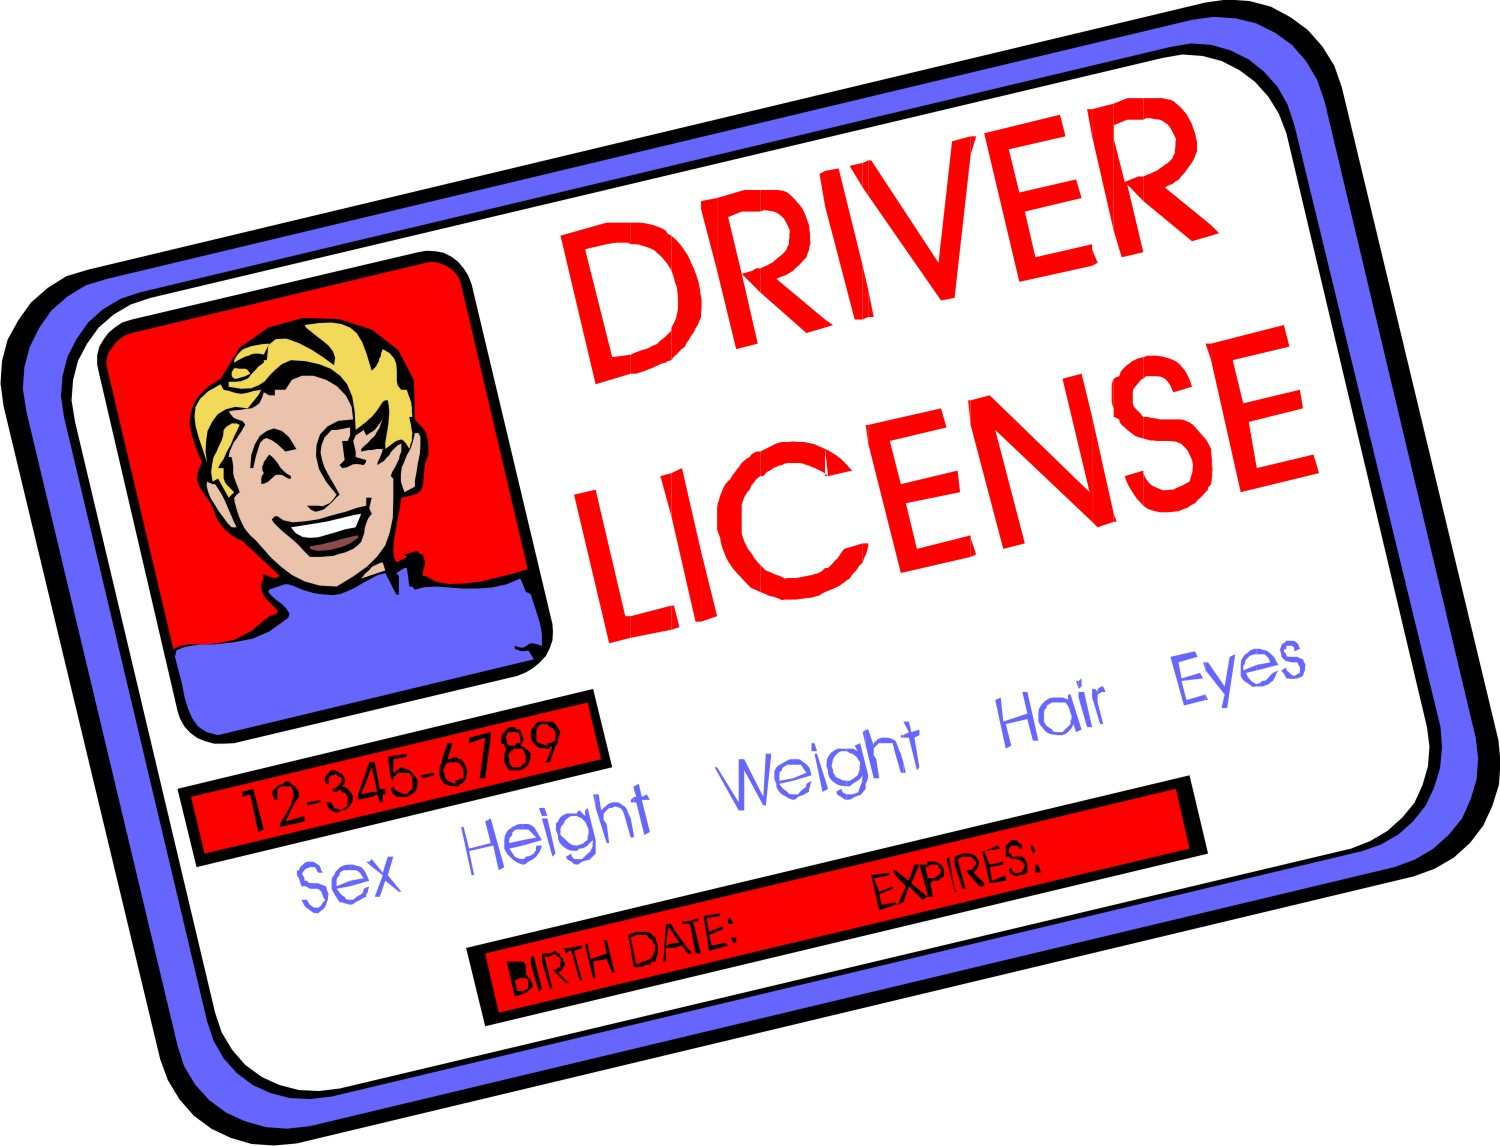 drivers license clipart valid driver